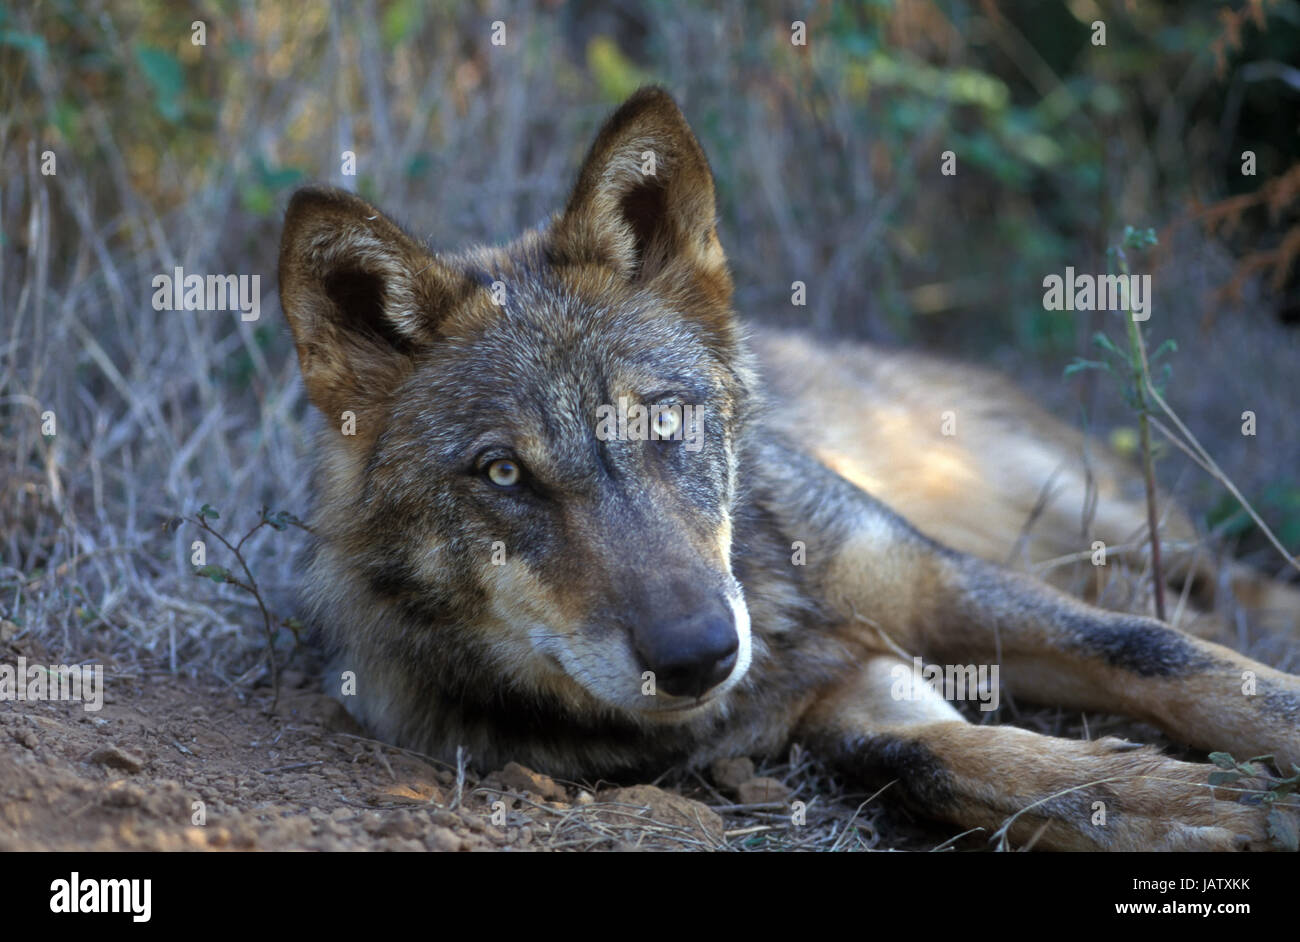 Iberian wolf (Canis lupus signatus). Iberian wolf it's an emblematic species of the Iberian fauna. Defecating. - Stock Image